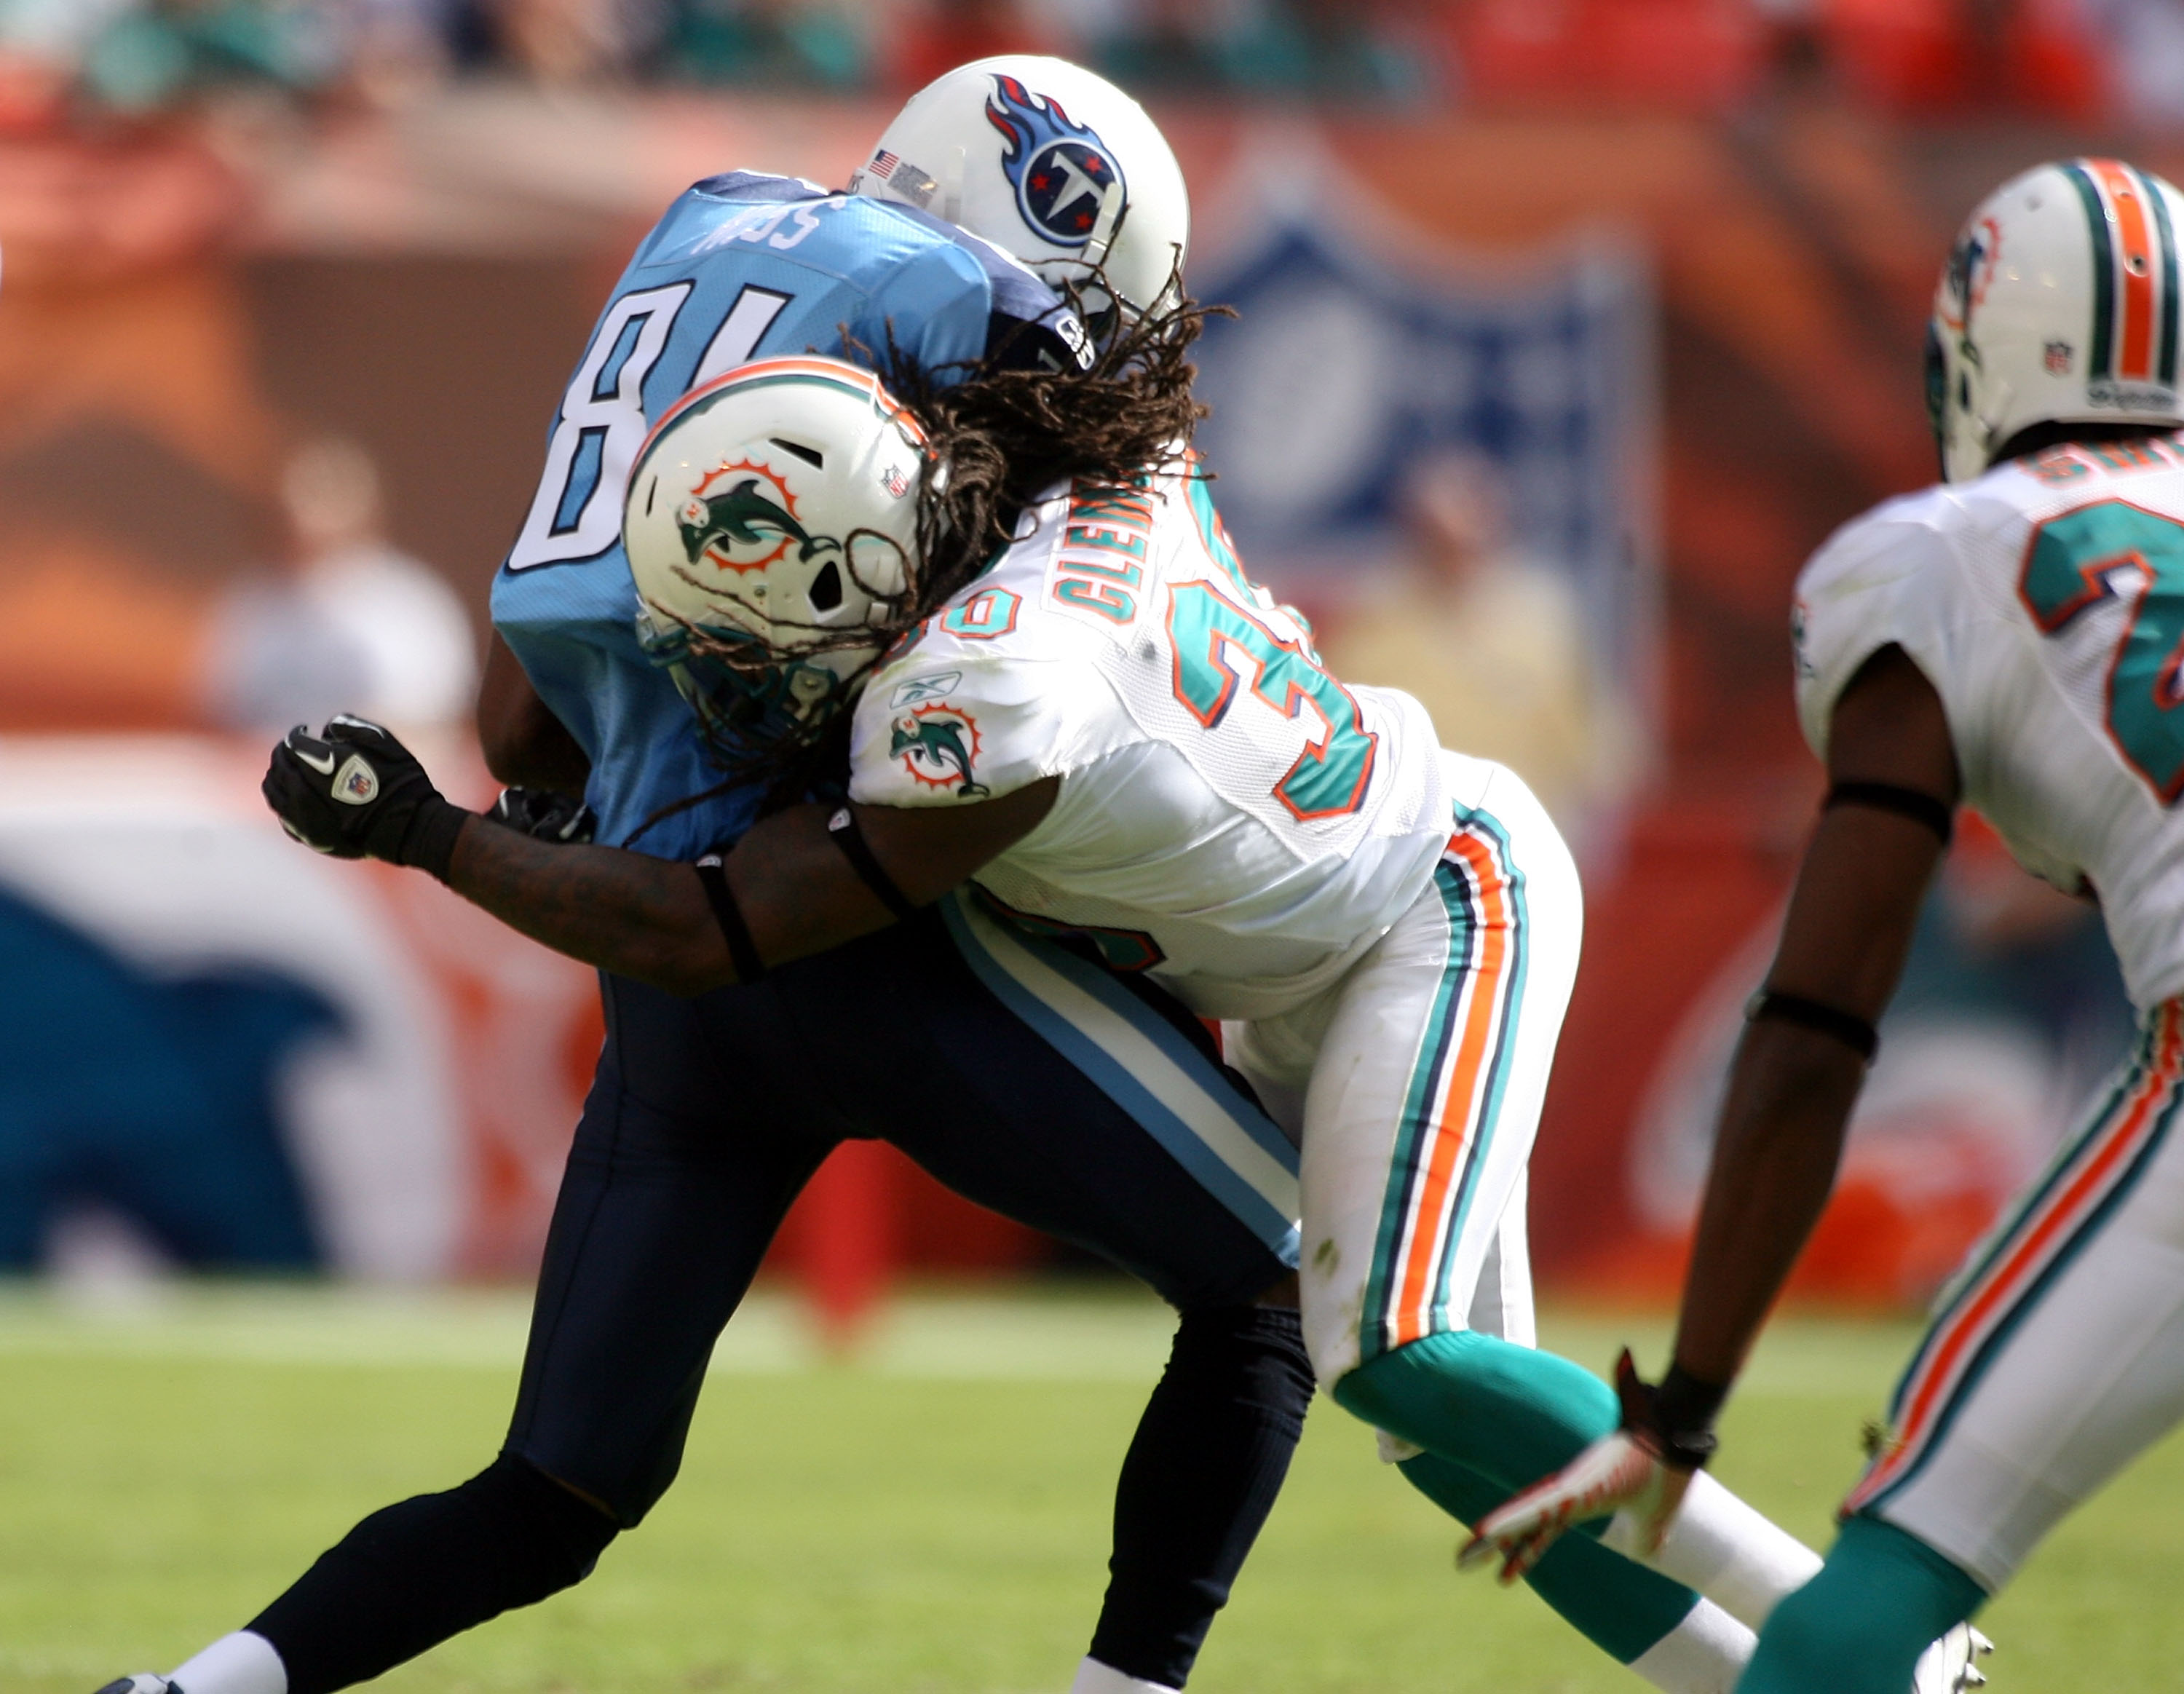 MIAMI - NOVEMBER 14:  Receiver Randy Moss #84 of the Tennessee Titans is hit by Chris Clemons of the Miami Dolphins at Sun Life Stadium on November 14, 2010 in Miami, Florida.  (Photo by Marc Serota/Getty Images)